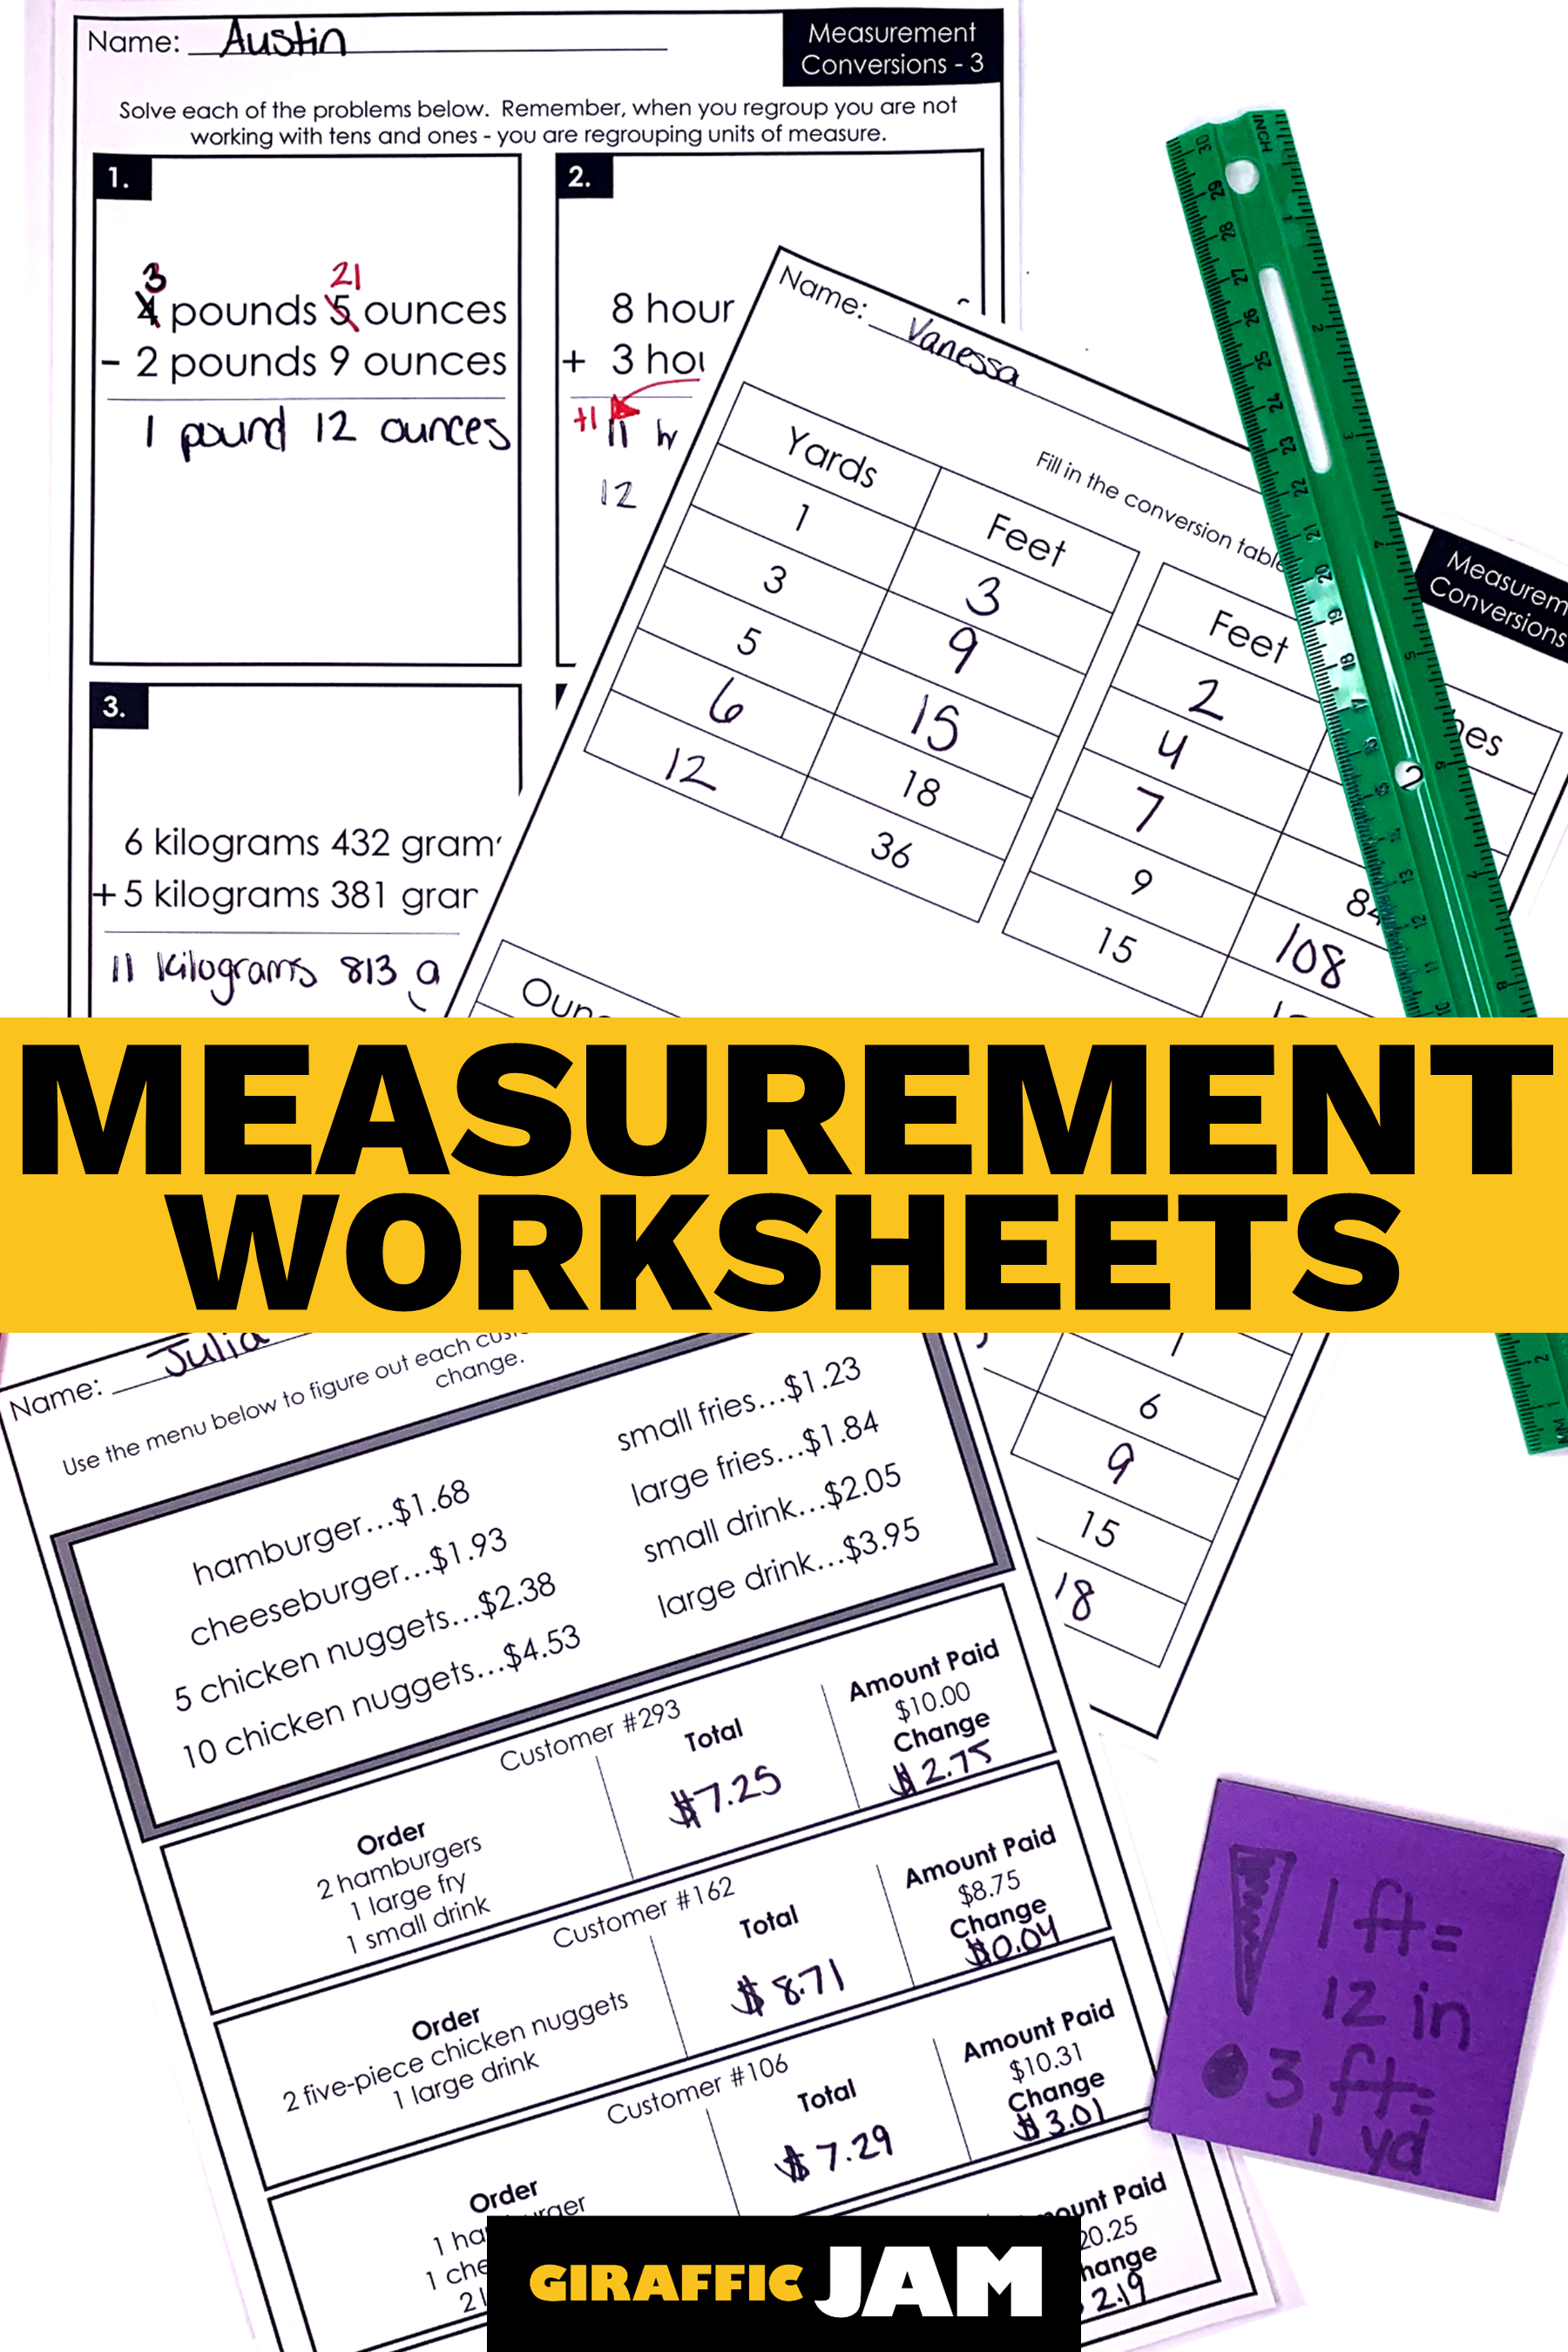 Measurement Worksheets   Measurement Homework   Measurement and Data   Measurement  worksheets [ 2700 x 1800 Pixel ]